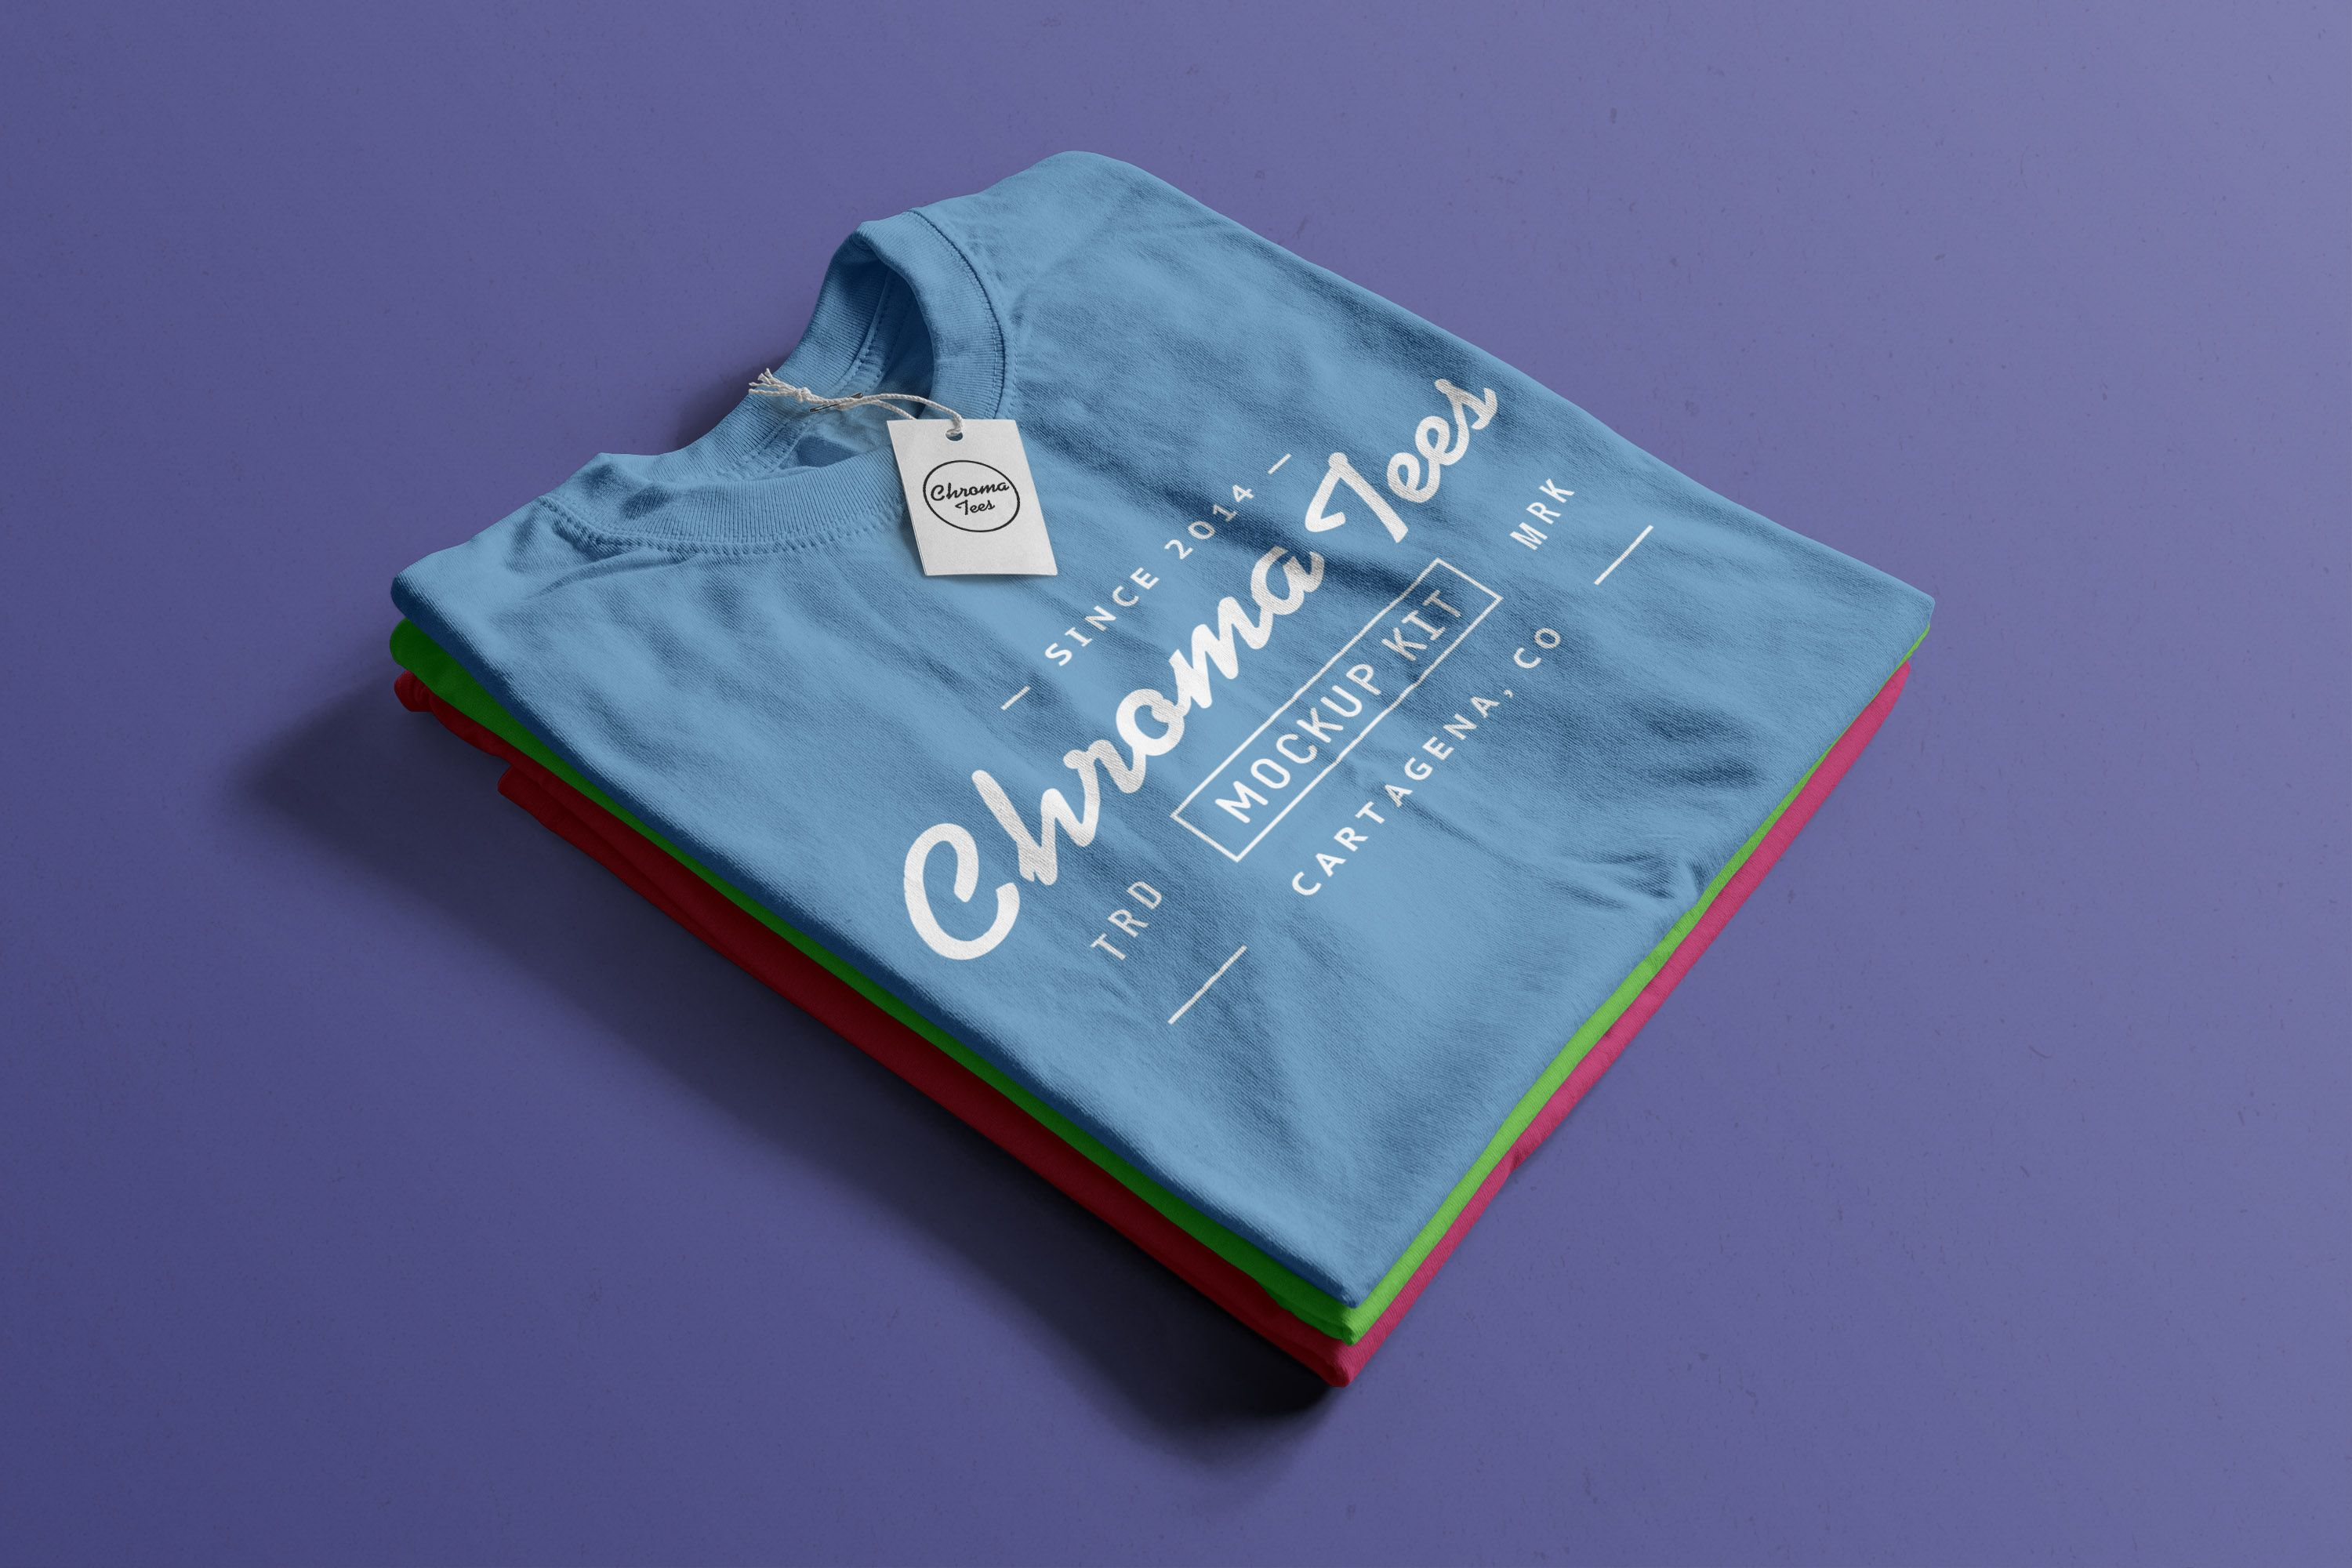 Download Stack Of Folded T Shirts Mockup 04 Original Mockups Shirt Mockup Tshirt Mockup Mockup